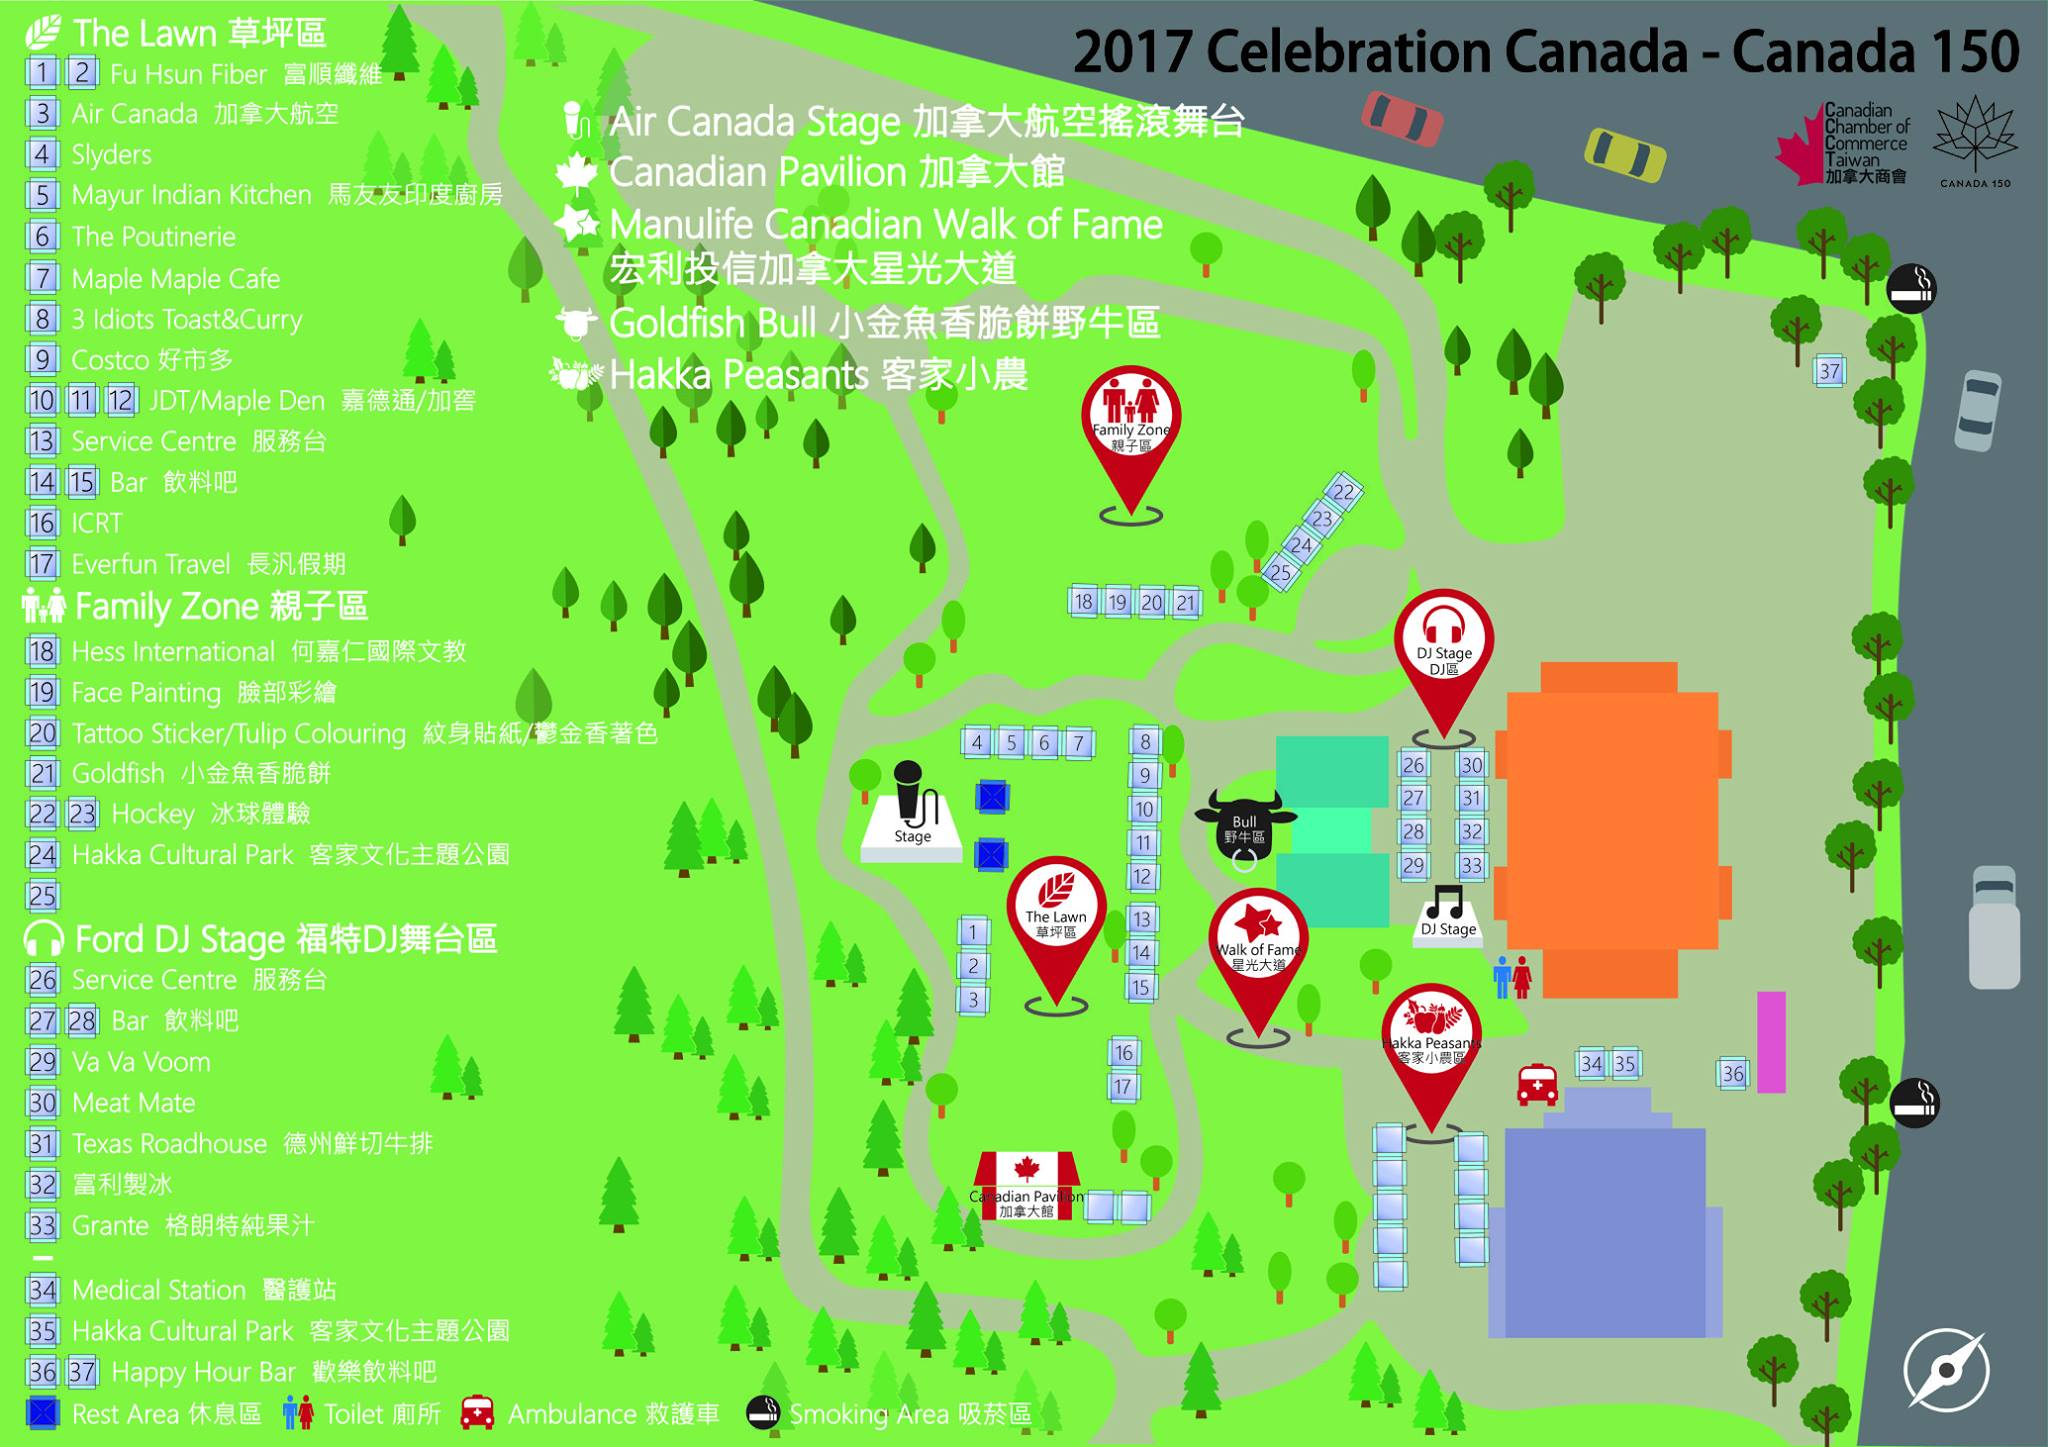 Celetion Canada Park Map - Canadian Chamber of Commerce in Taiwan on